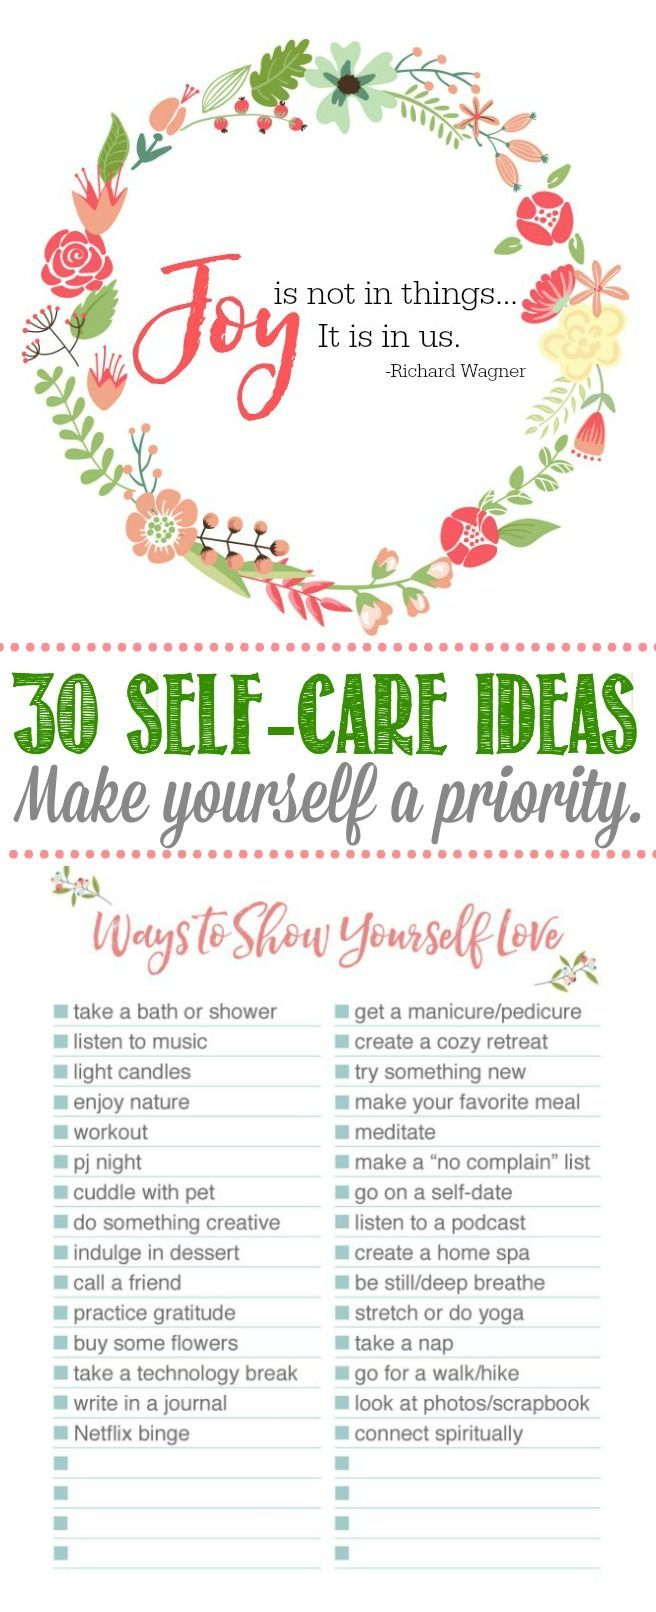 Take time for yourself to unwind, reset and rejuvenate. 30 self-care ideas with free printable. Must read!